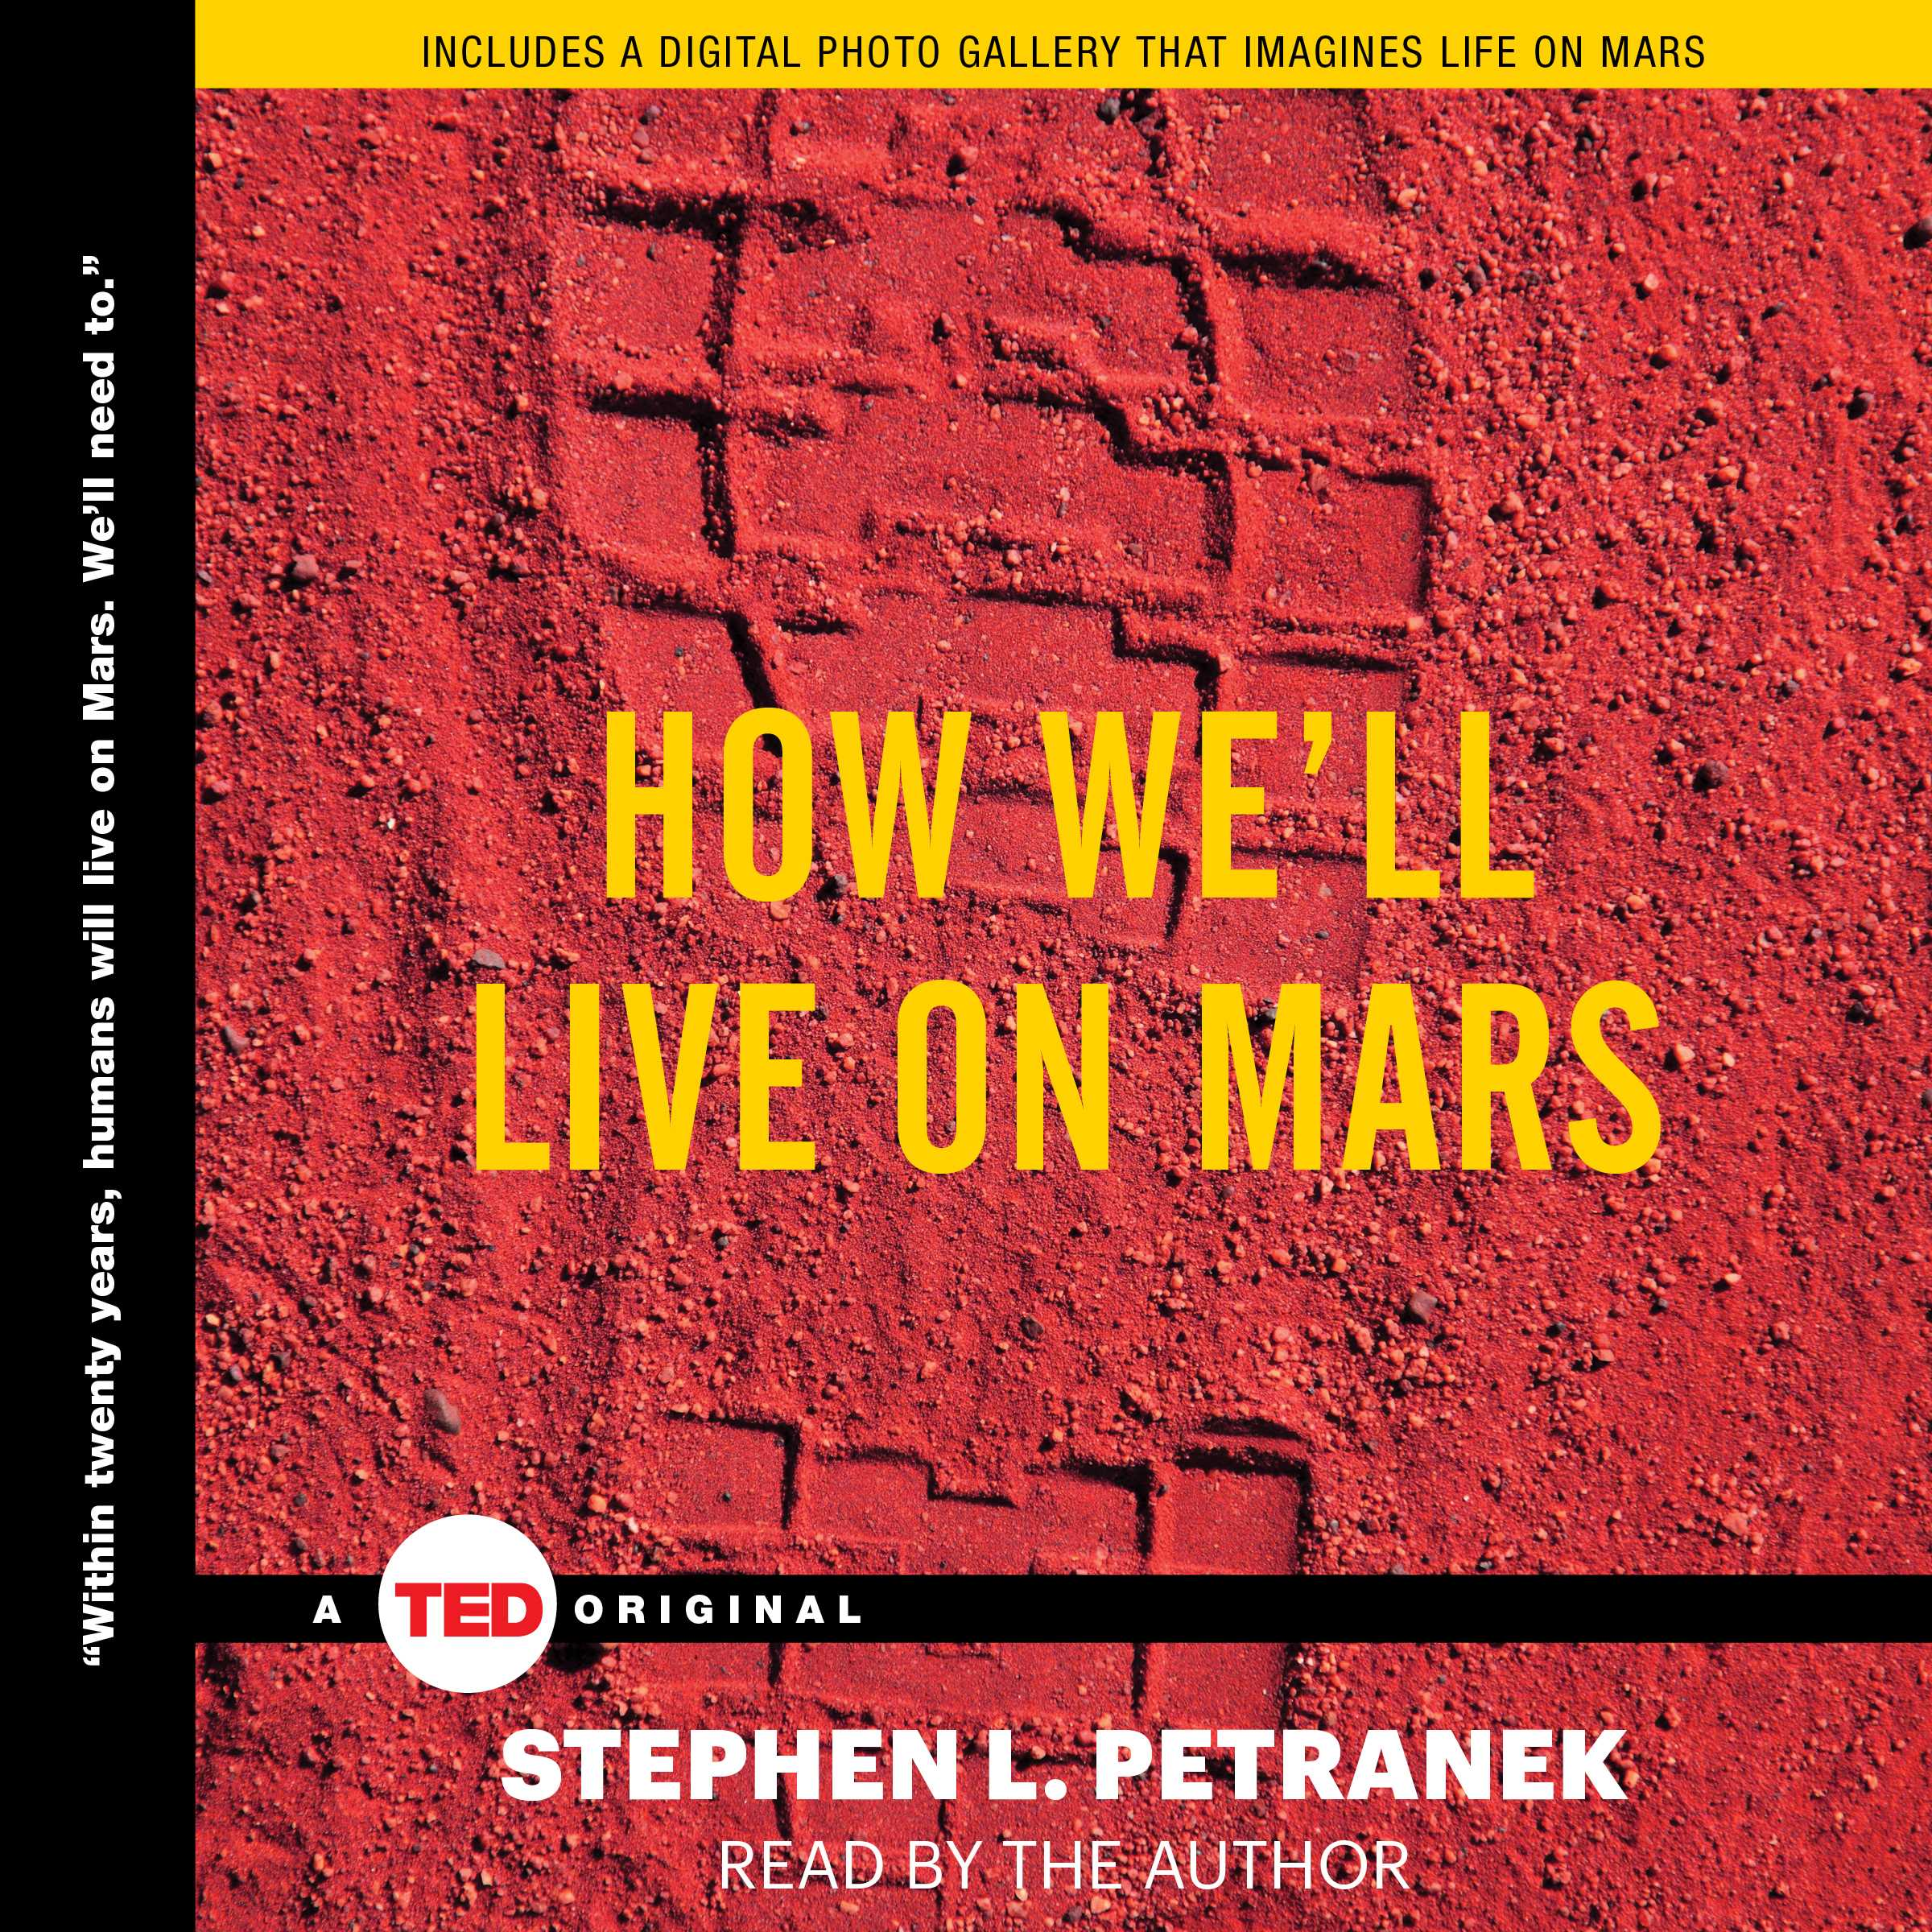 How well live on mars 9781442375871 hr